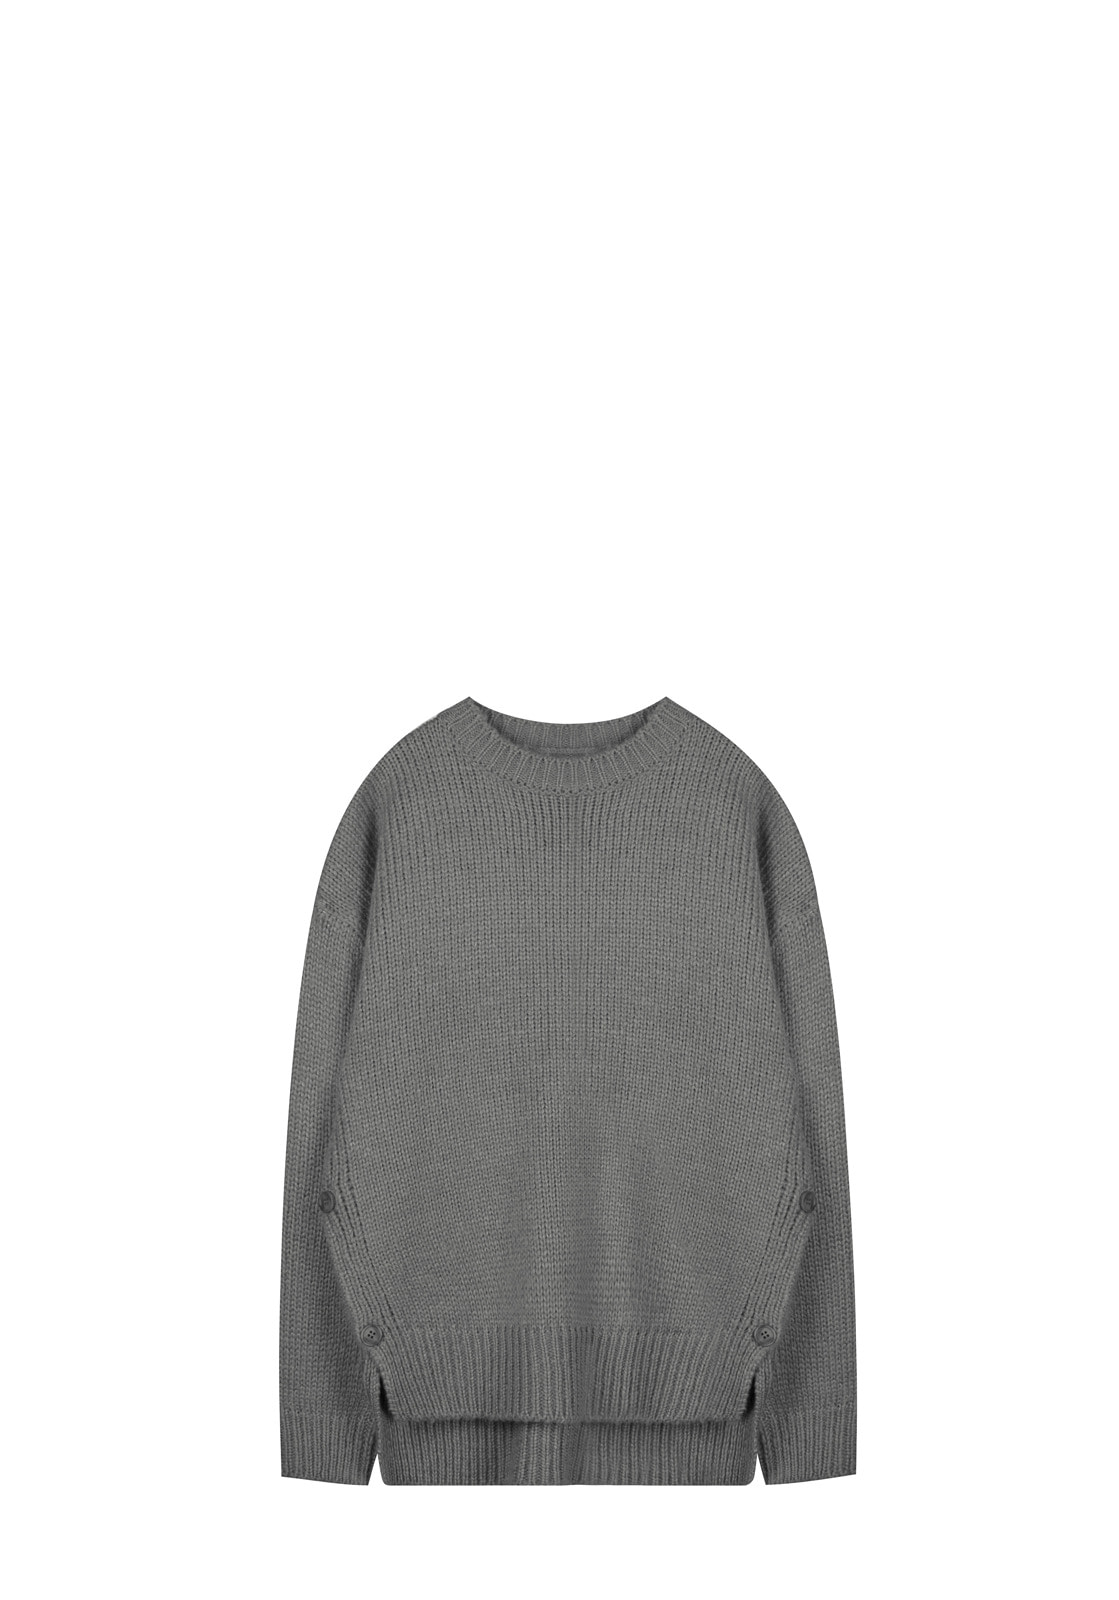 V521 SIDE BUTTON ROUND WOOL KNITGRAY